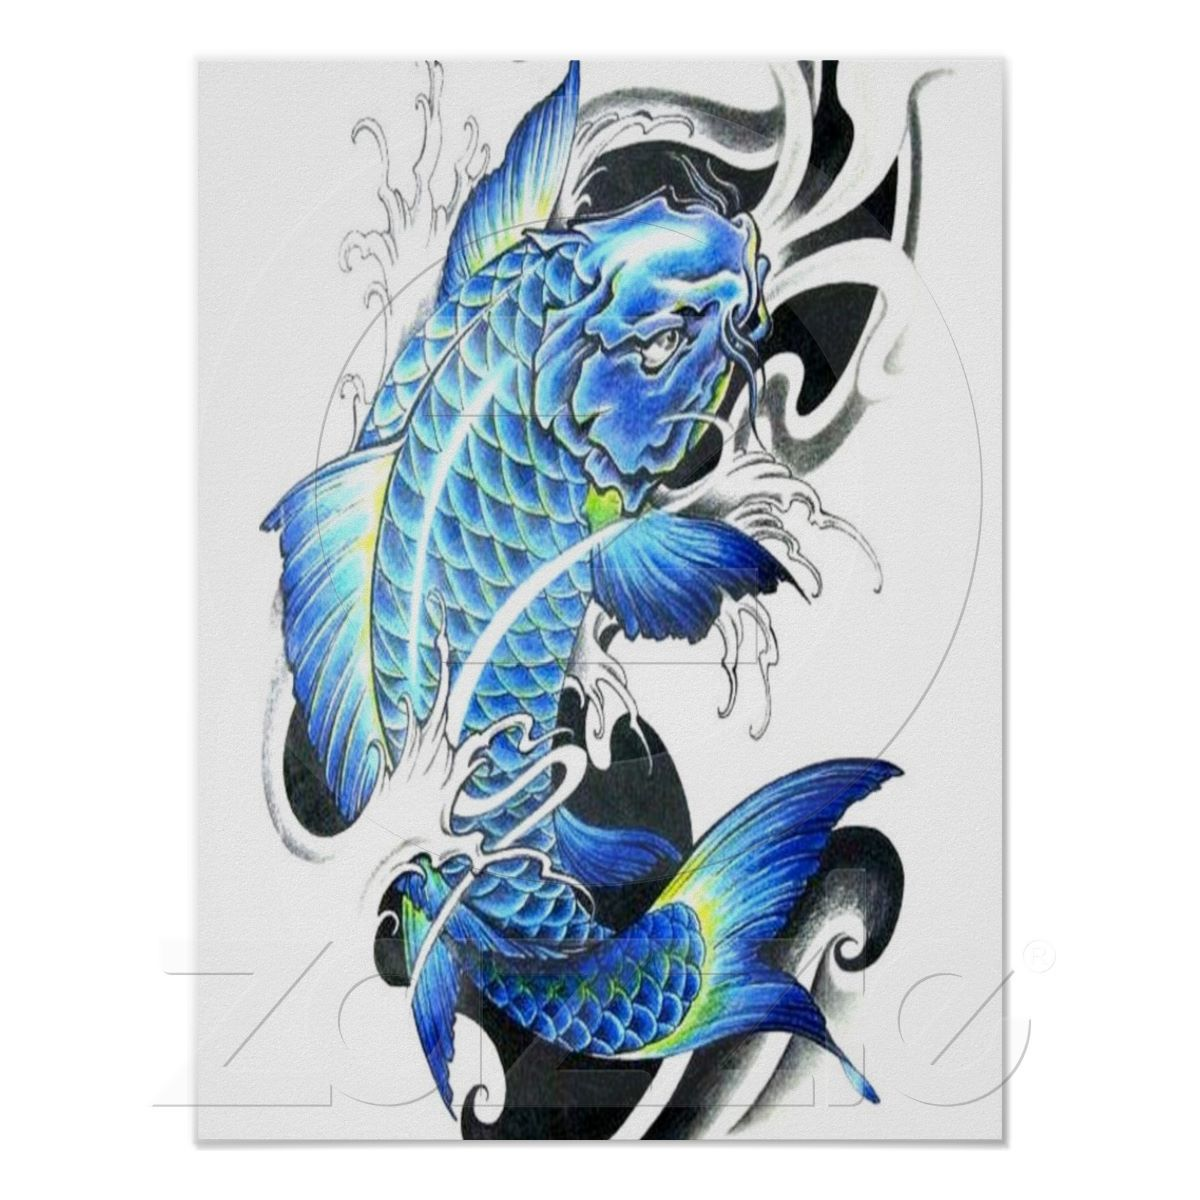 Tattoo Ideas Koi Carp: Koi Tattoo Design, Koi Fish